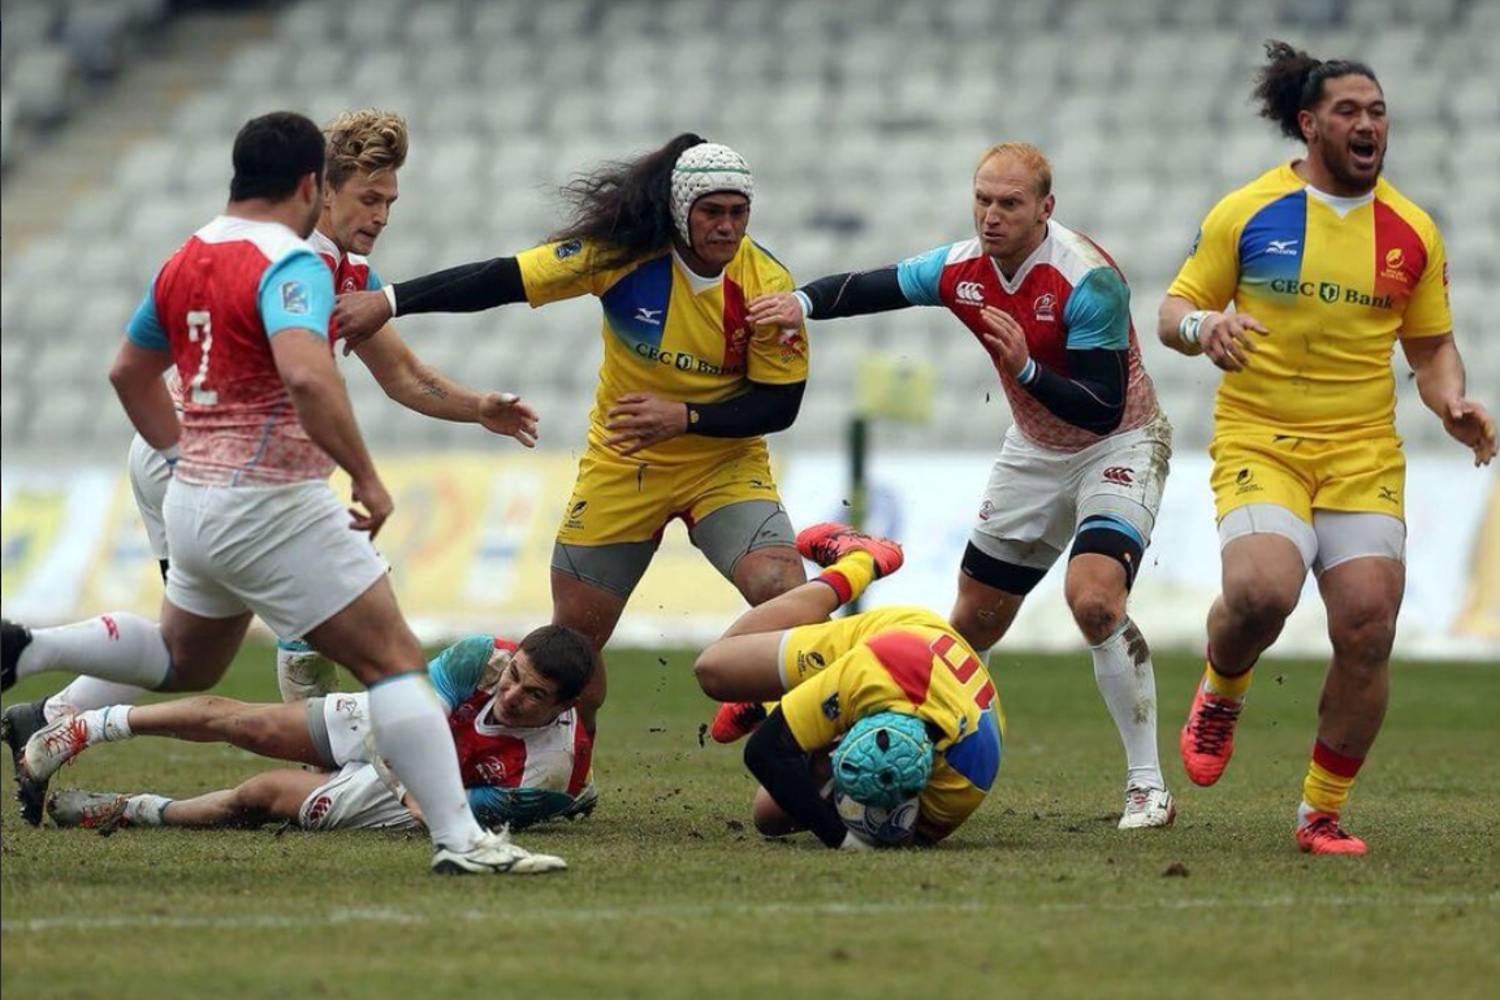 Rugby Europe Championship 2018 - Romania v Russia